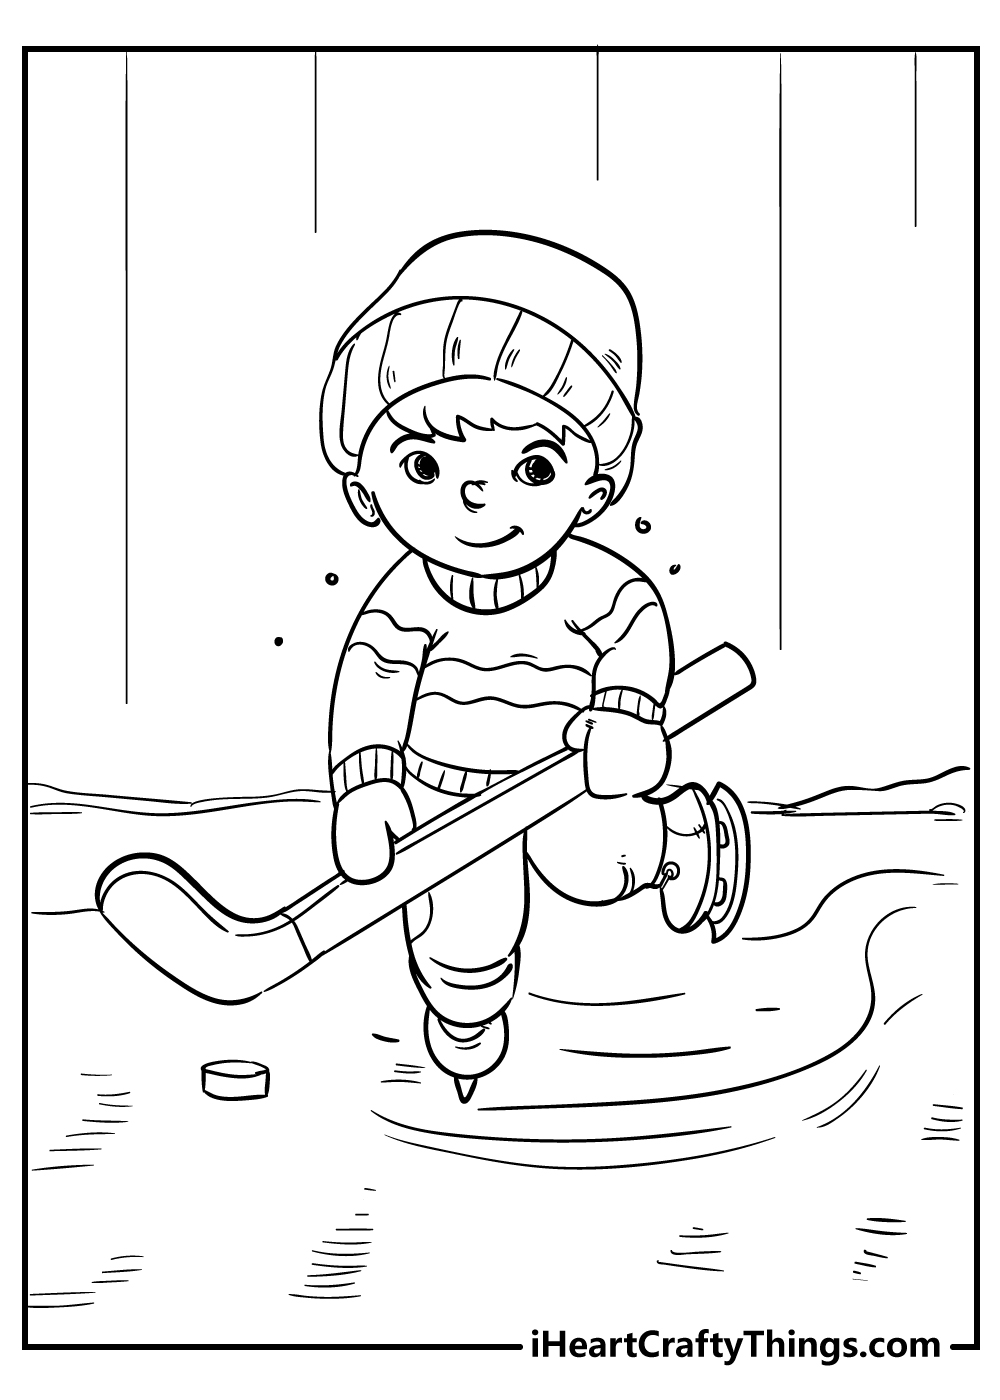 ice skating coloring pages for boys free download